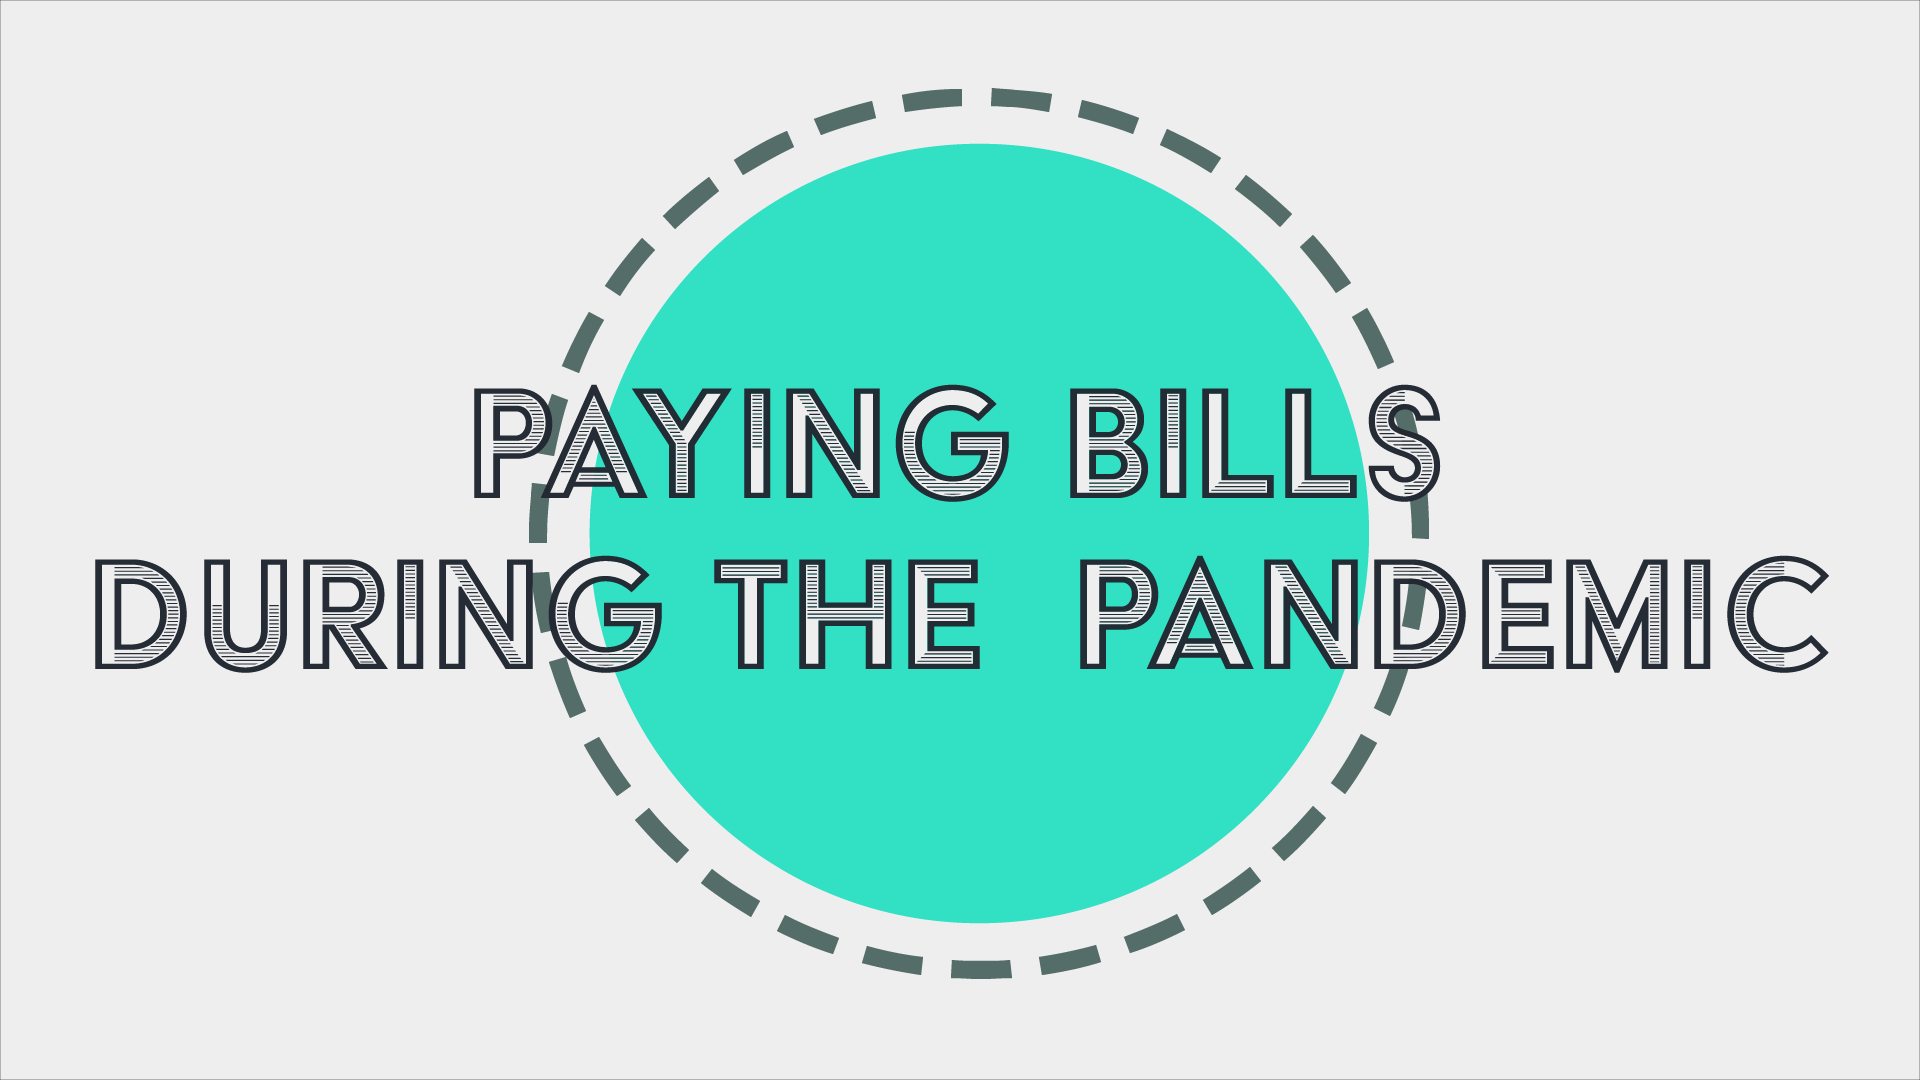 Paying Bills During the Pandemic